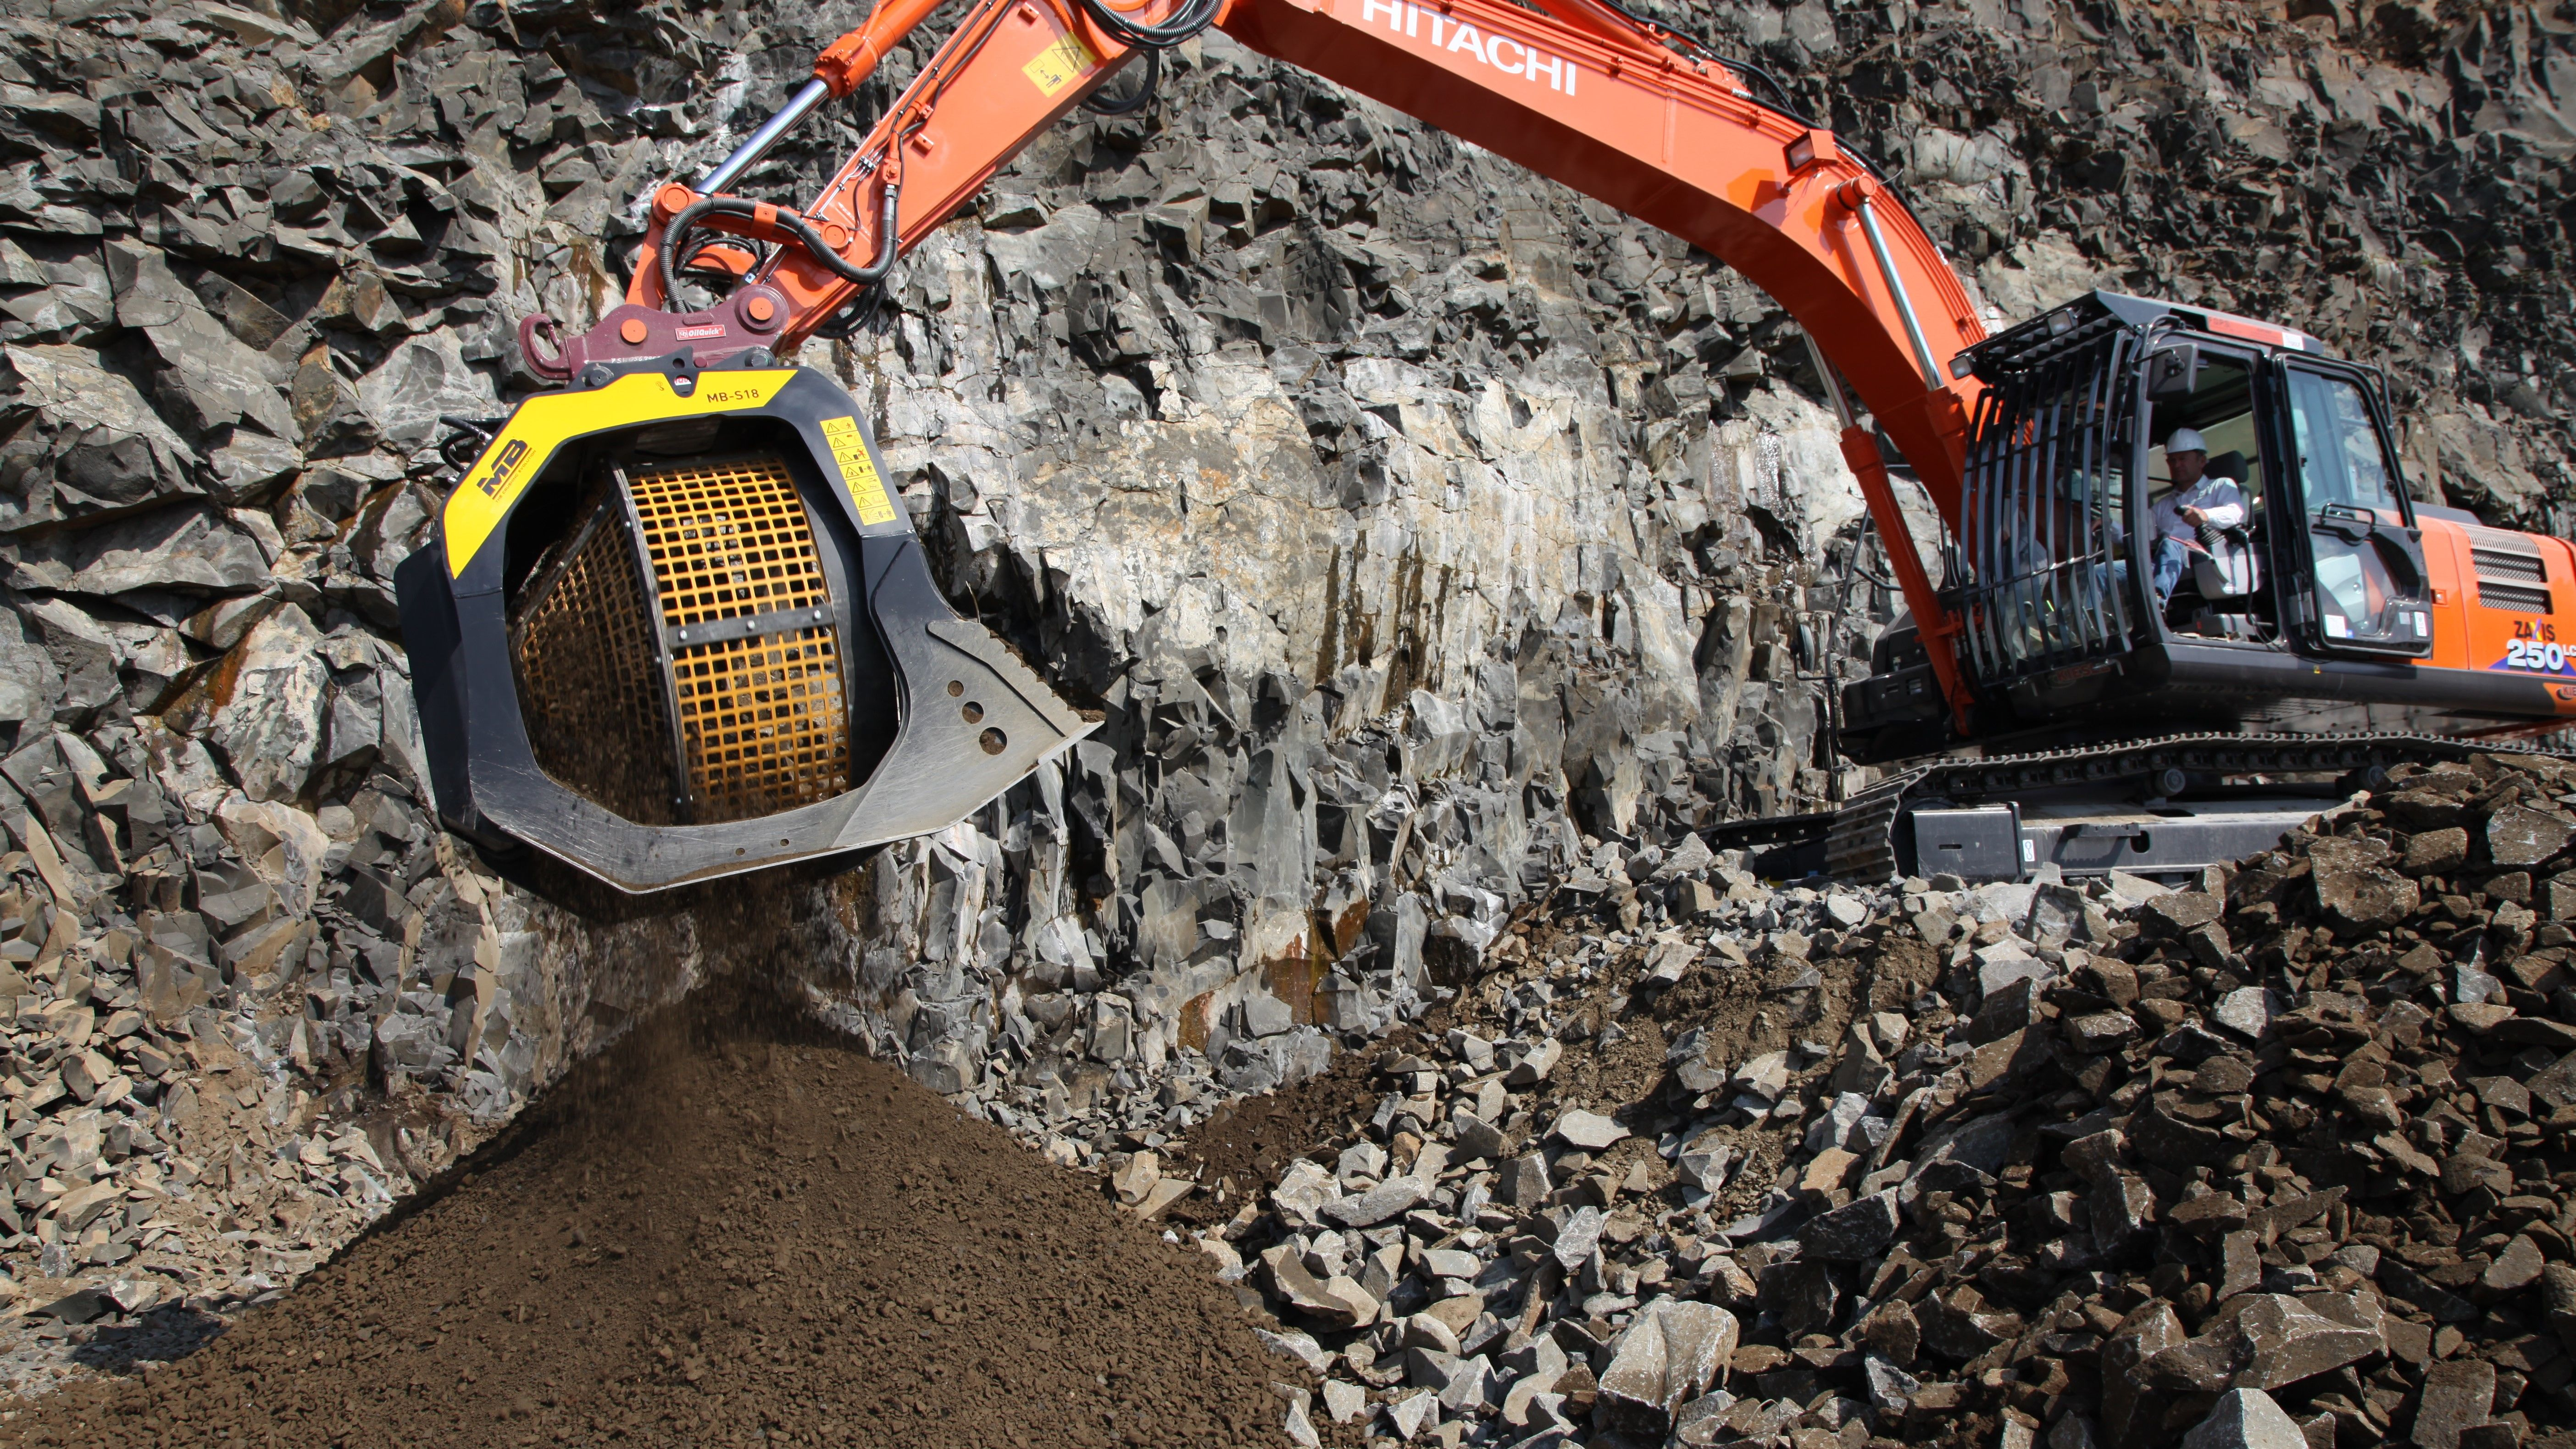 One of the buckets on thedemo lineupis a crowd favorite, theBF90.3 crusher bucket.